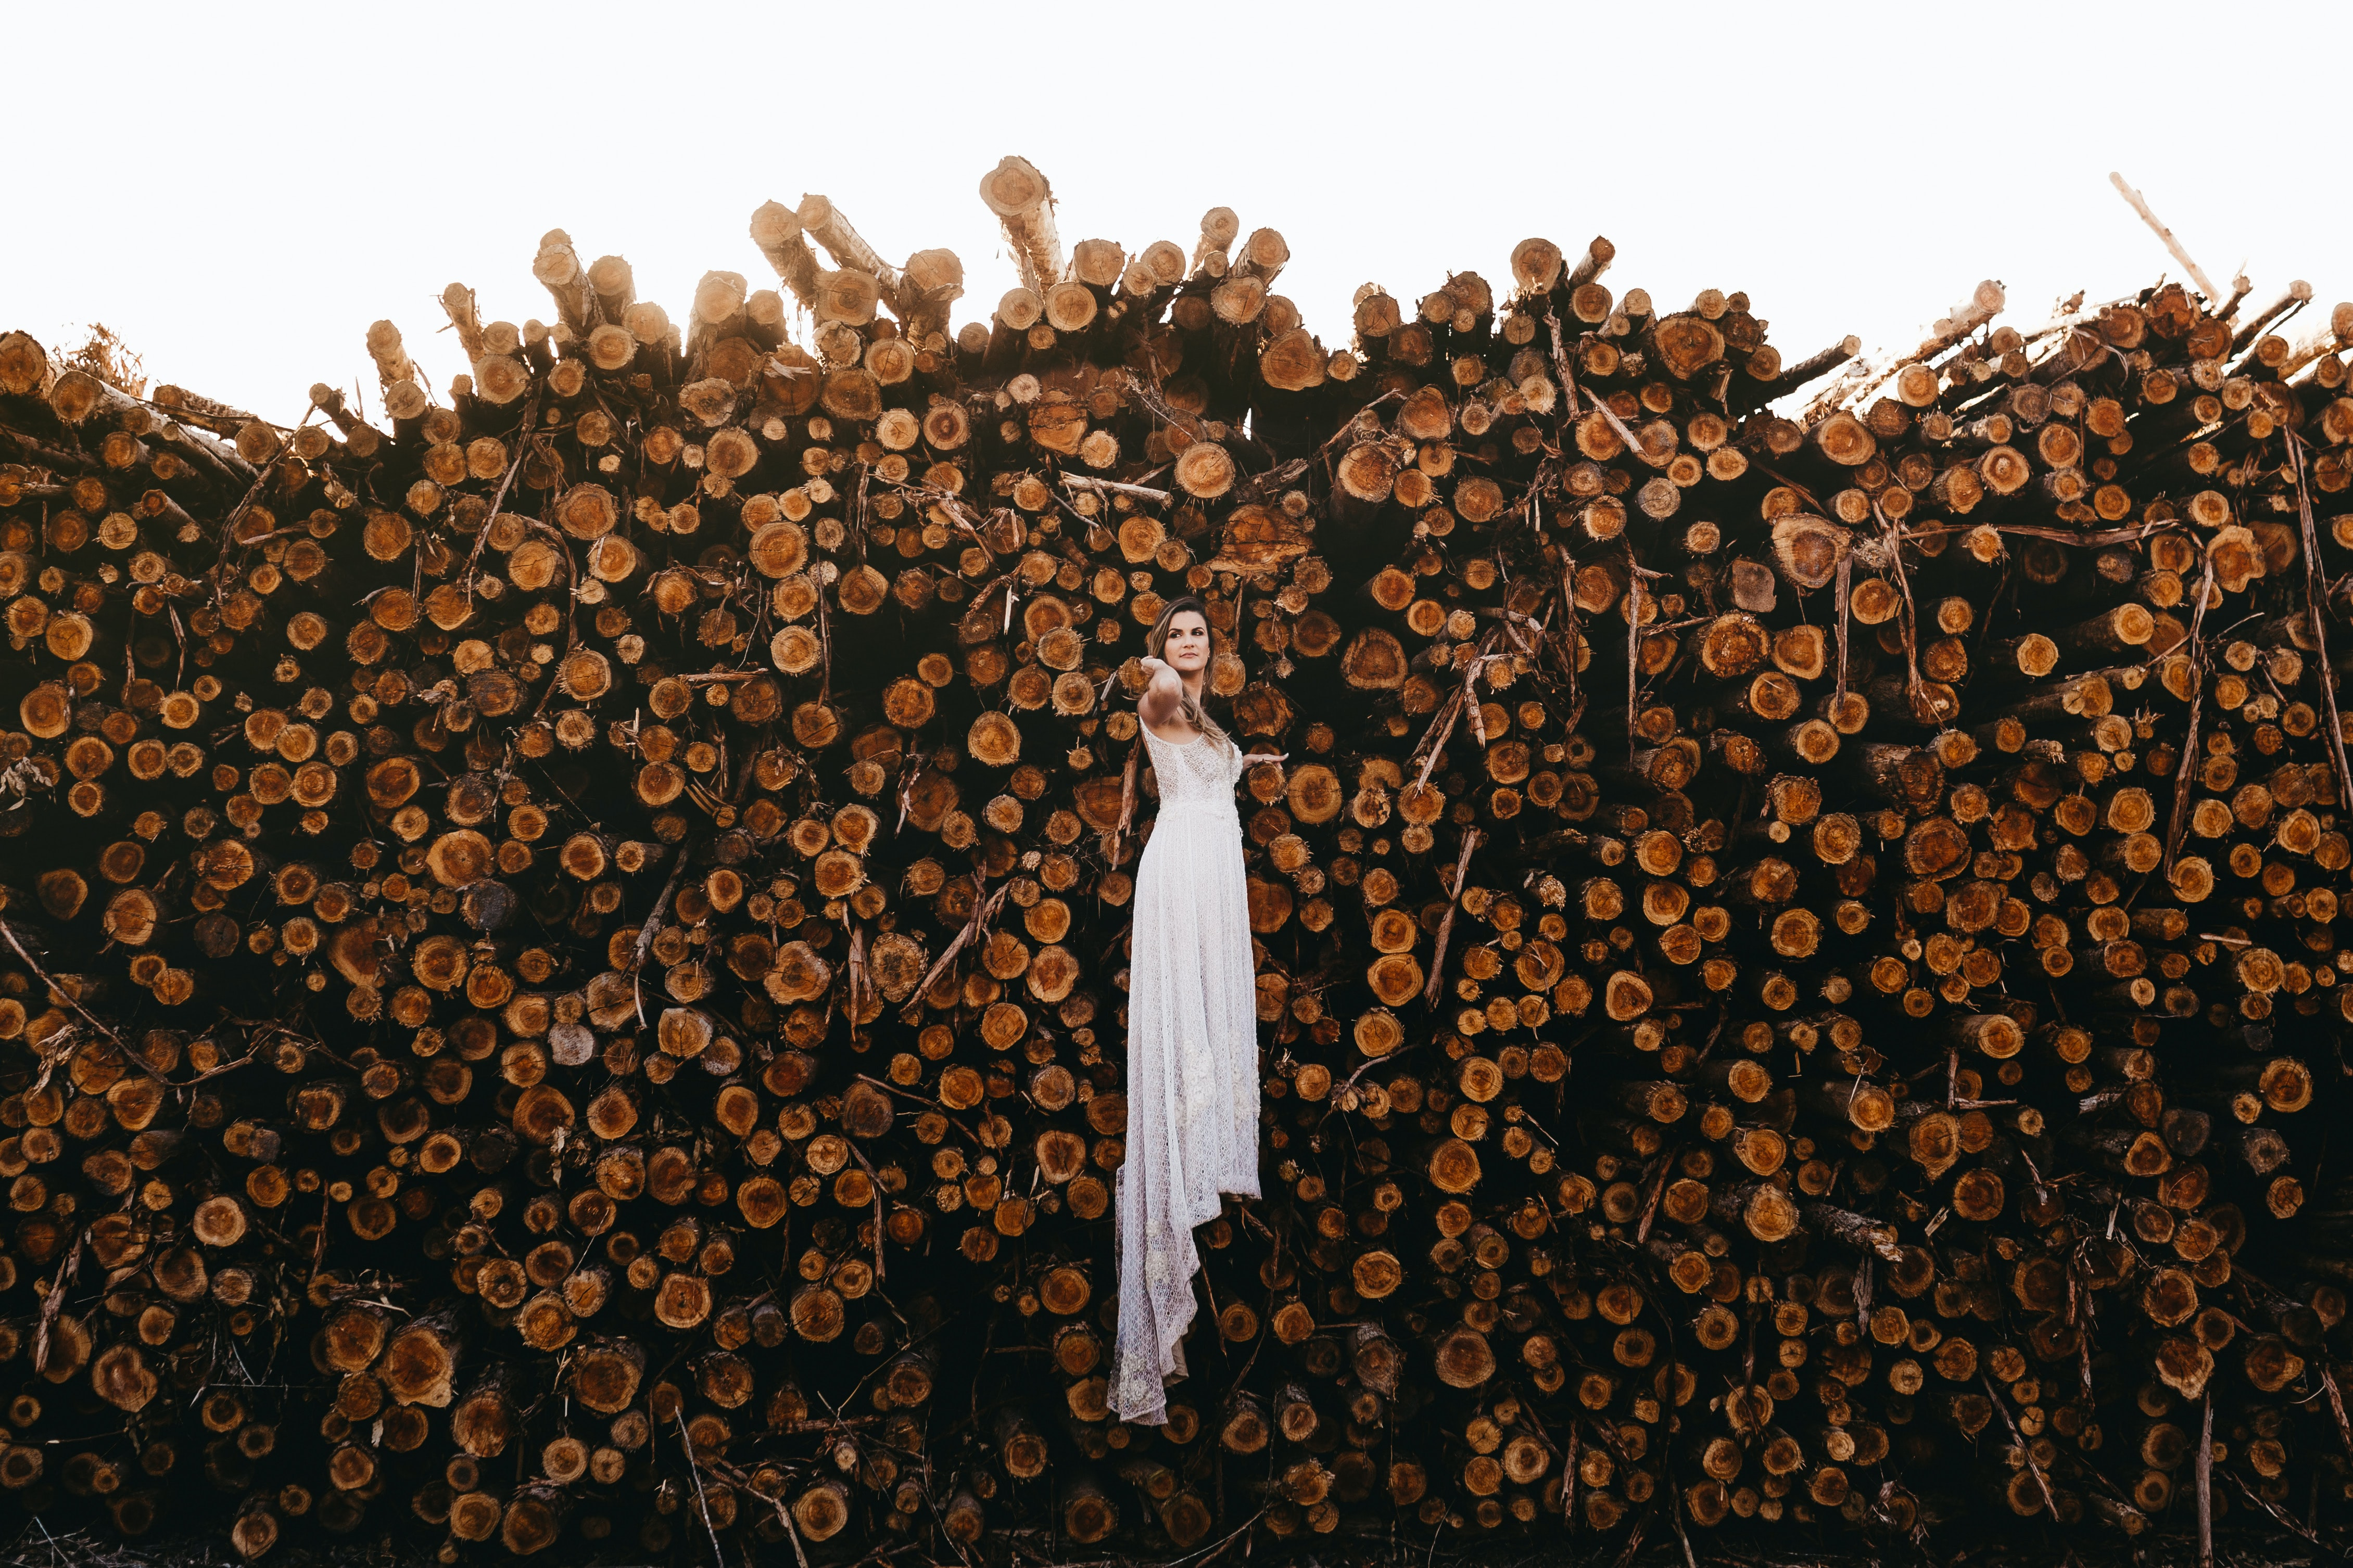 woman standing in front of wood logs